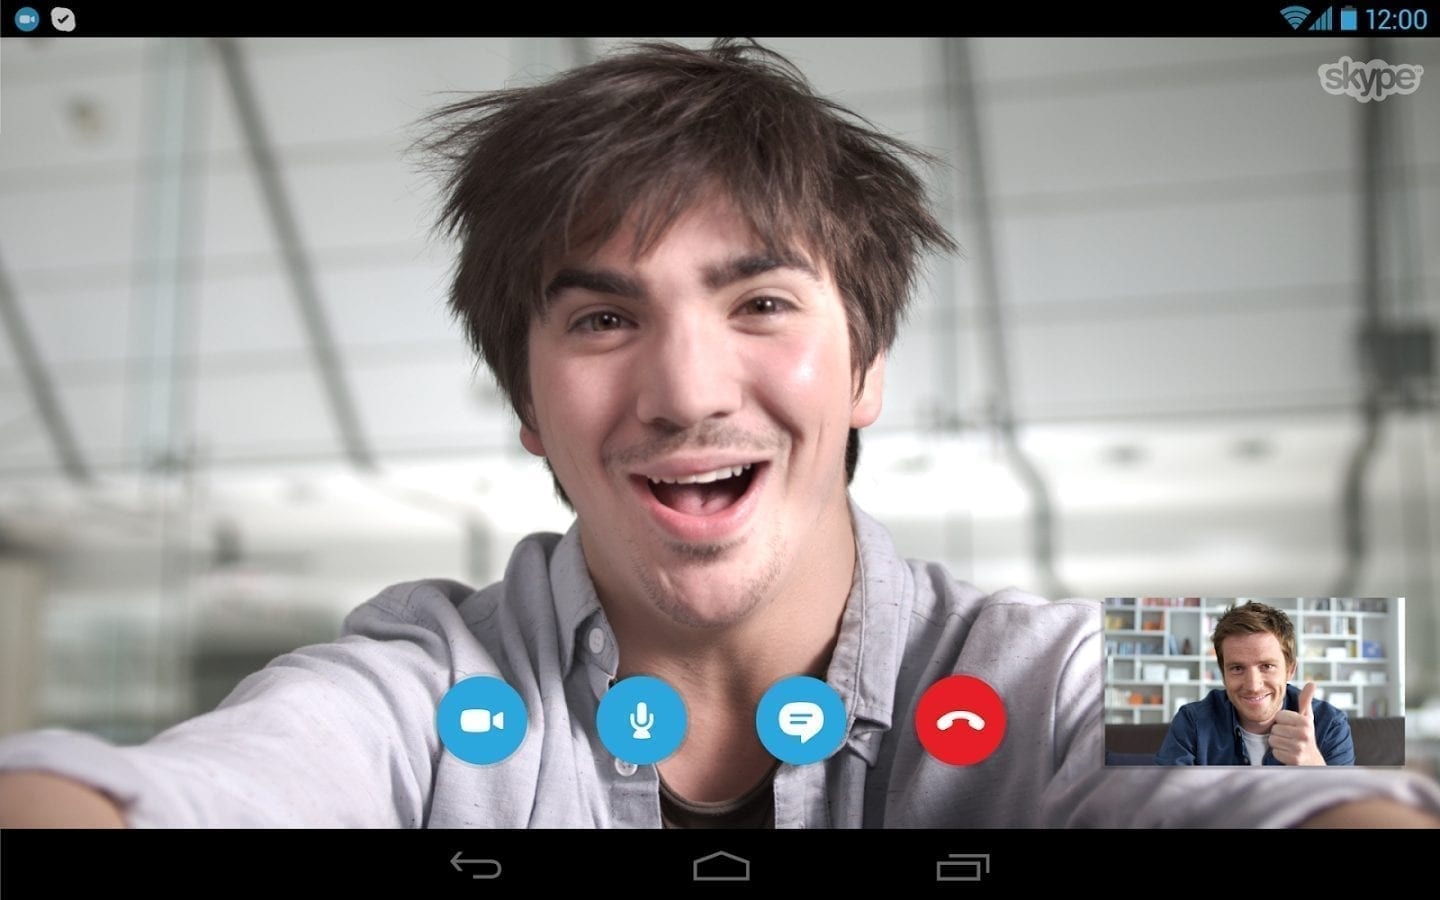 facts about skype